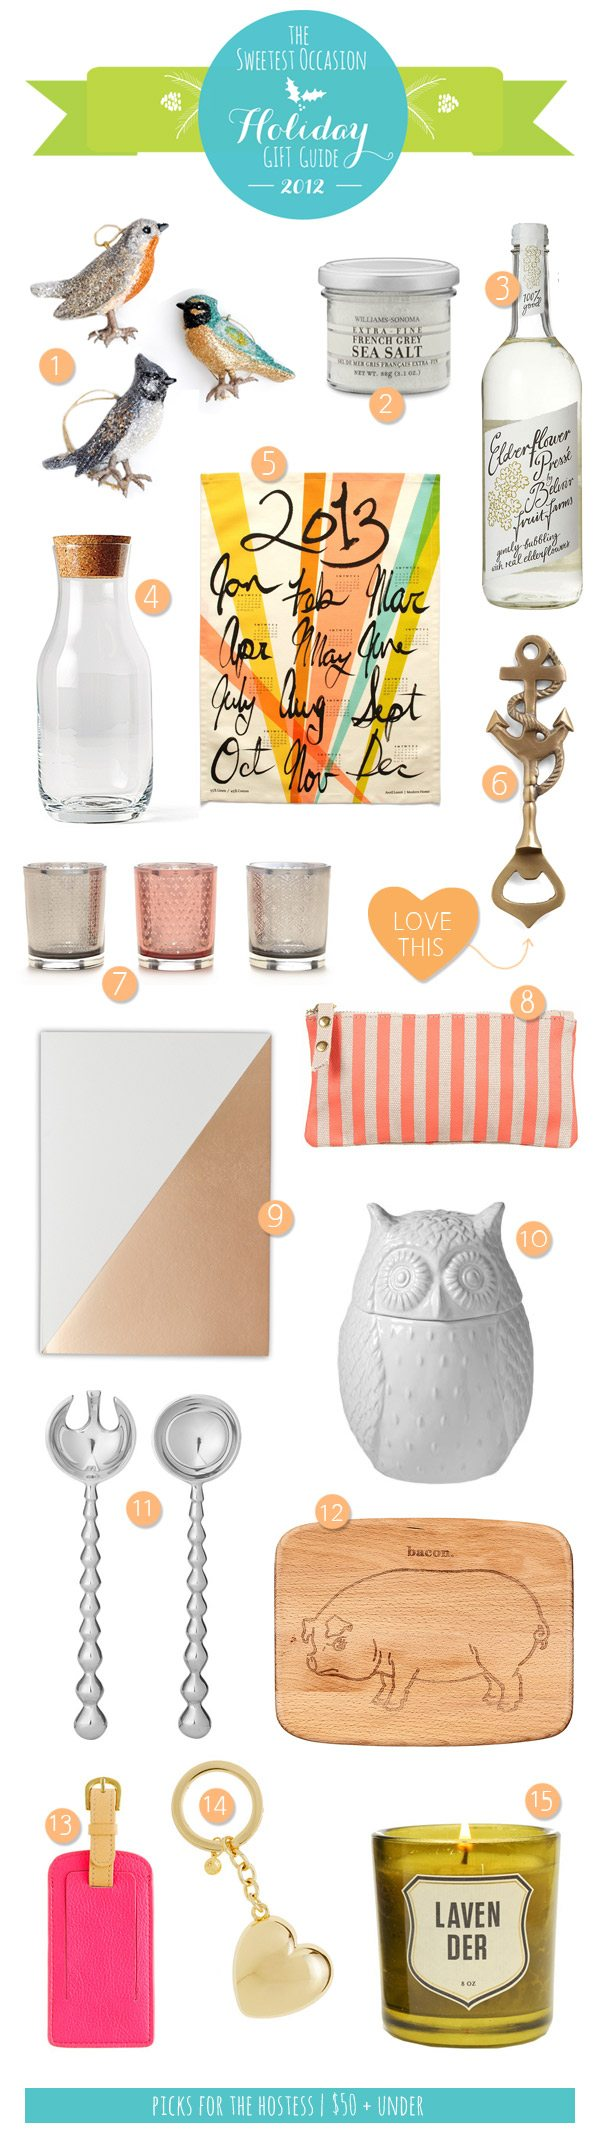 The Gift Guide: Hostess Gifts | The Sweetest Occasion